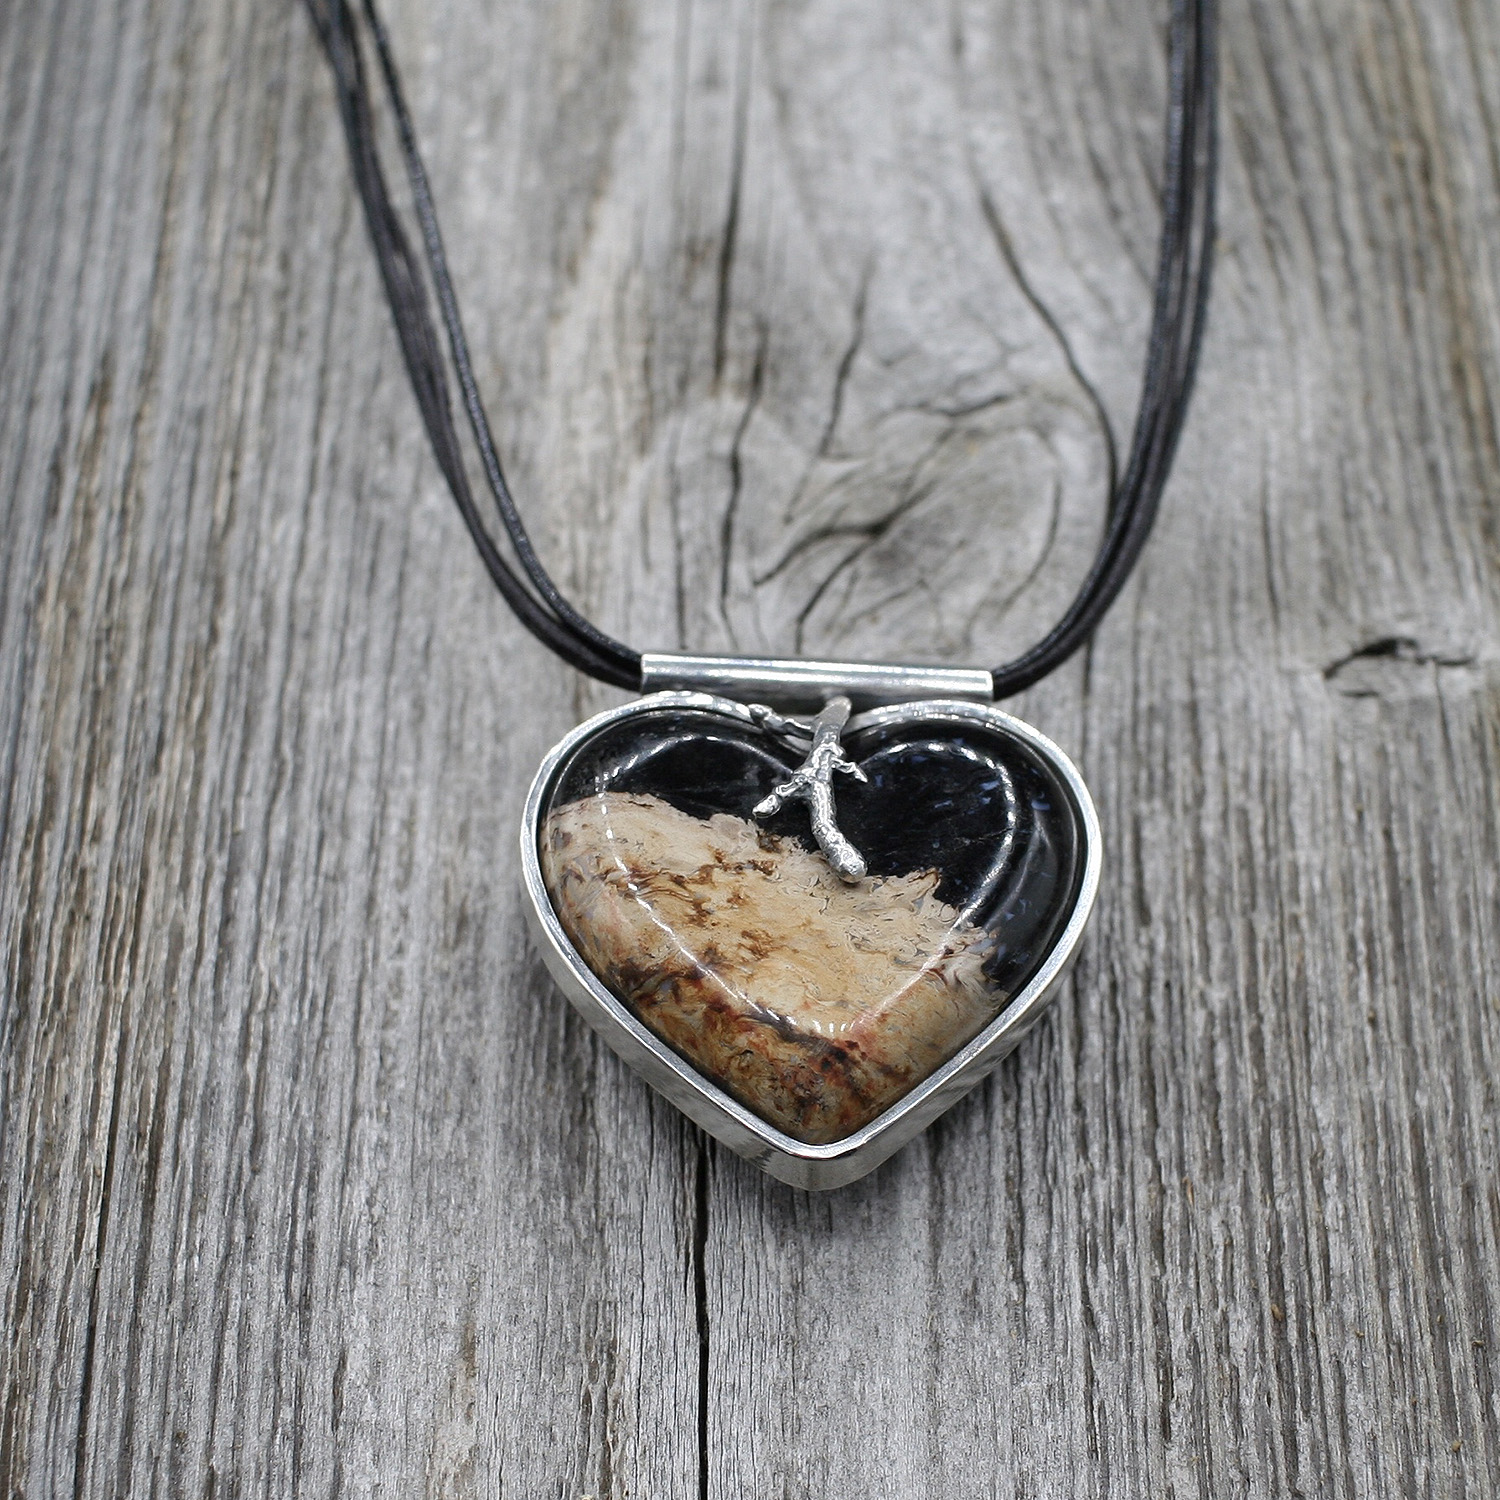 Handcrafted Stone Heart Pendant on Black Leather Cord Necklace